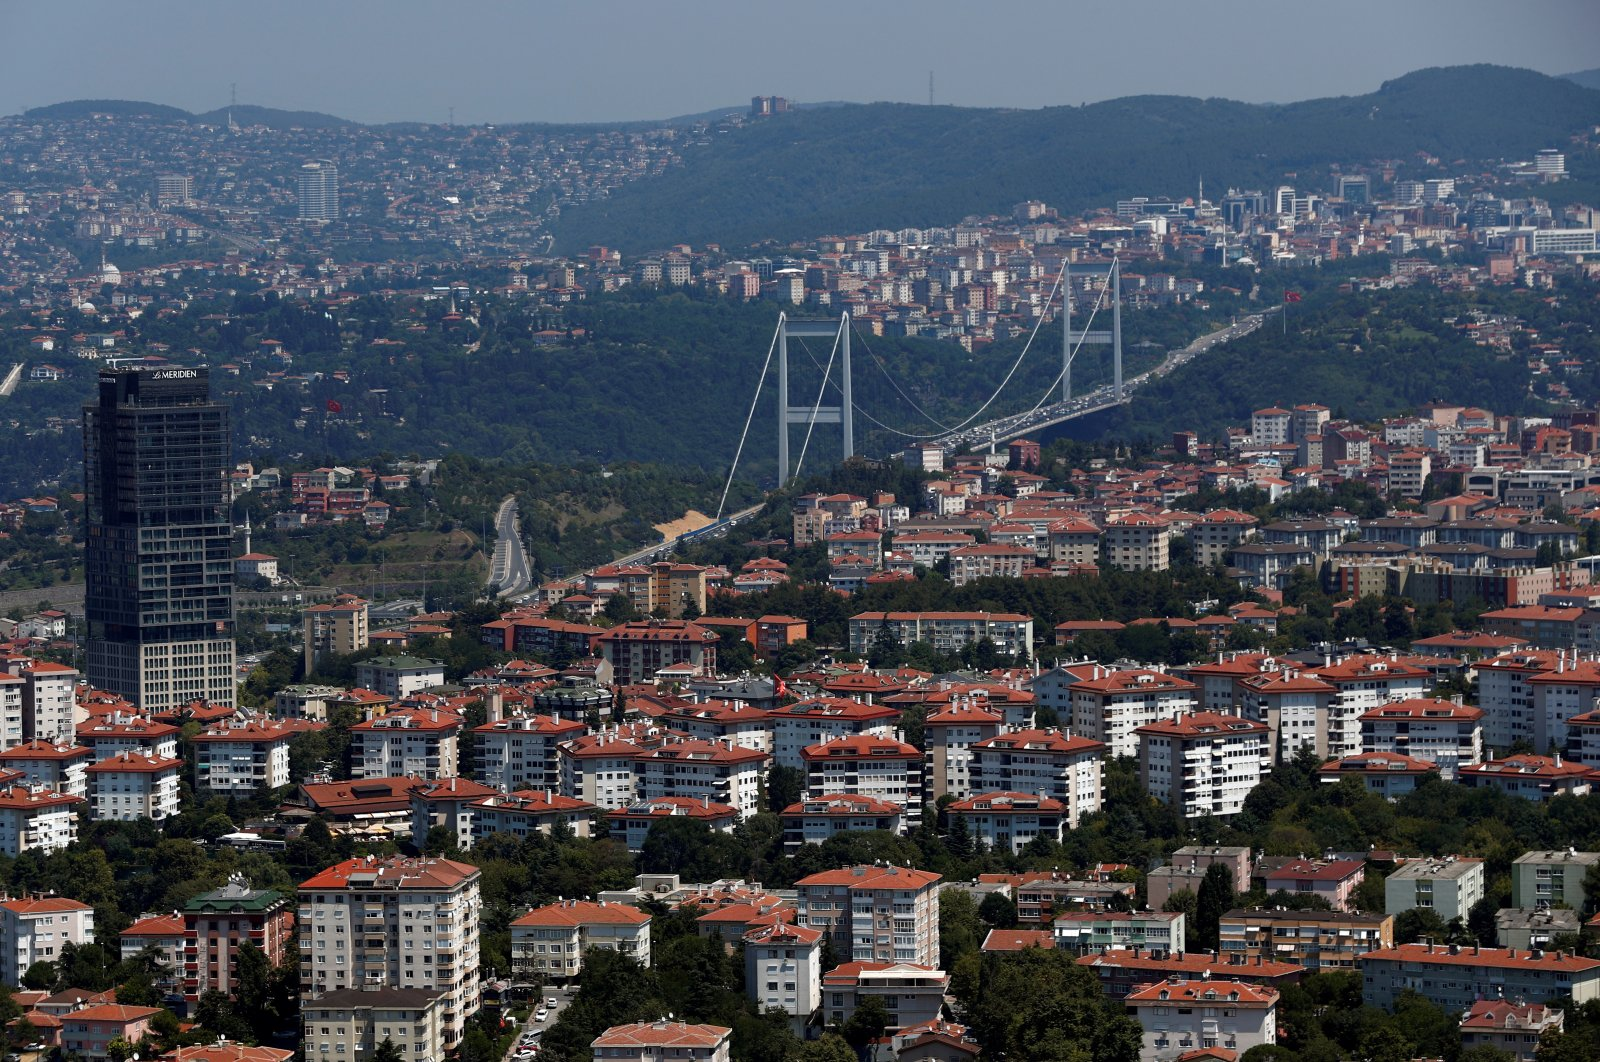 The Fatih Sultan Mehmet Bridge linking the city's European and Asian sides over the Bosporus waterway is seen behind residential apartment blocks in Istanbul, Turkey, Aug. 1, 2019. (Reuters Photo)